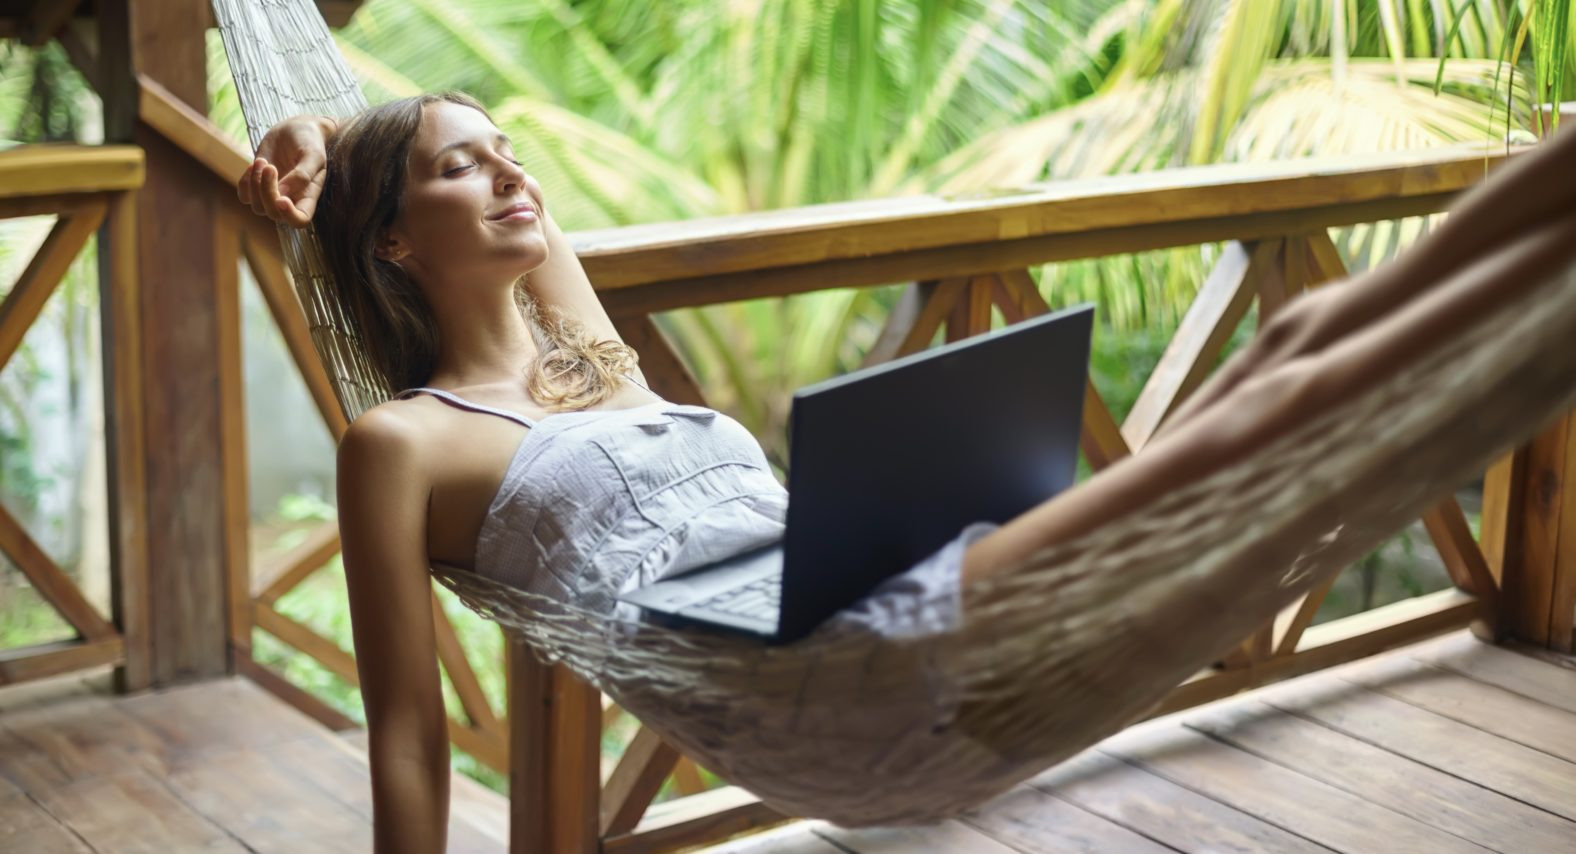 Young beautiful woman relaxing in a hammock with laptop in a tropical resort. Break time